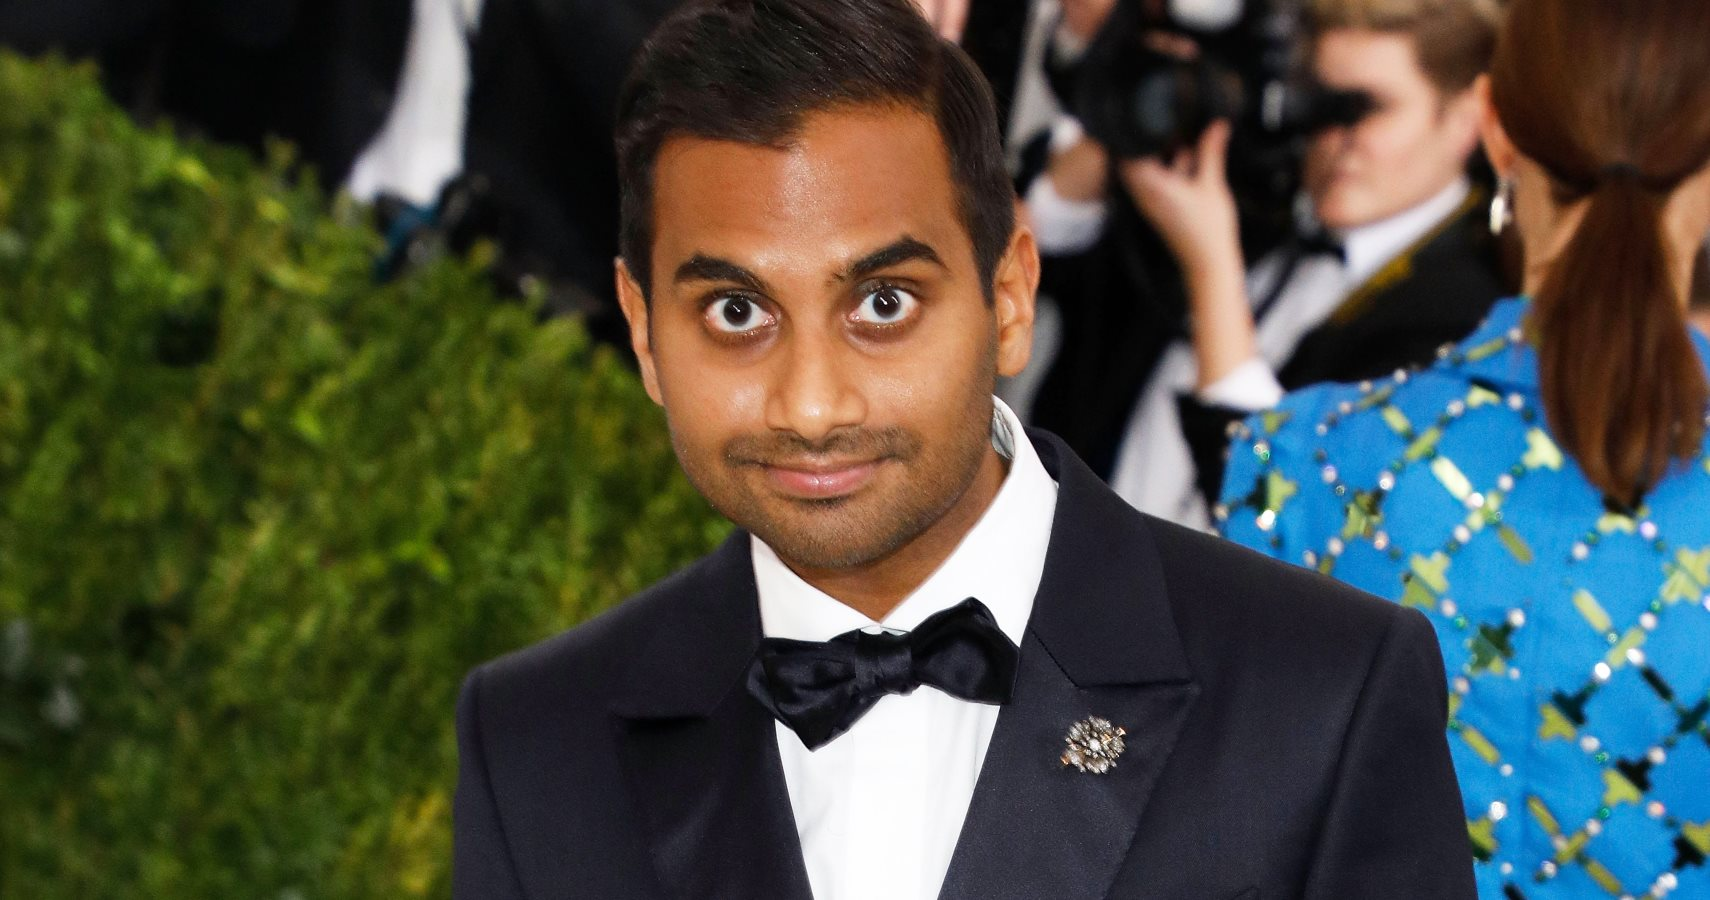 aziz ansari texting while dating Aziz ansari combining comedy and sociology actually reveals a lot about modern-day dating and relationships david shankbone, cc by 20 phone calls and face-to-face communication are dwindling while texting rates continue to surge breaking up with people over social media is a thing now, too.